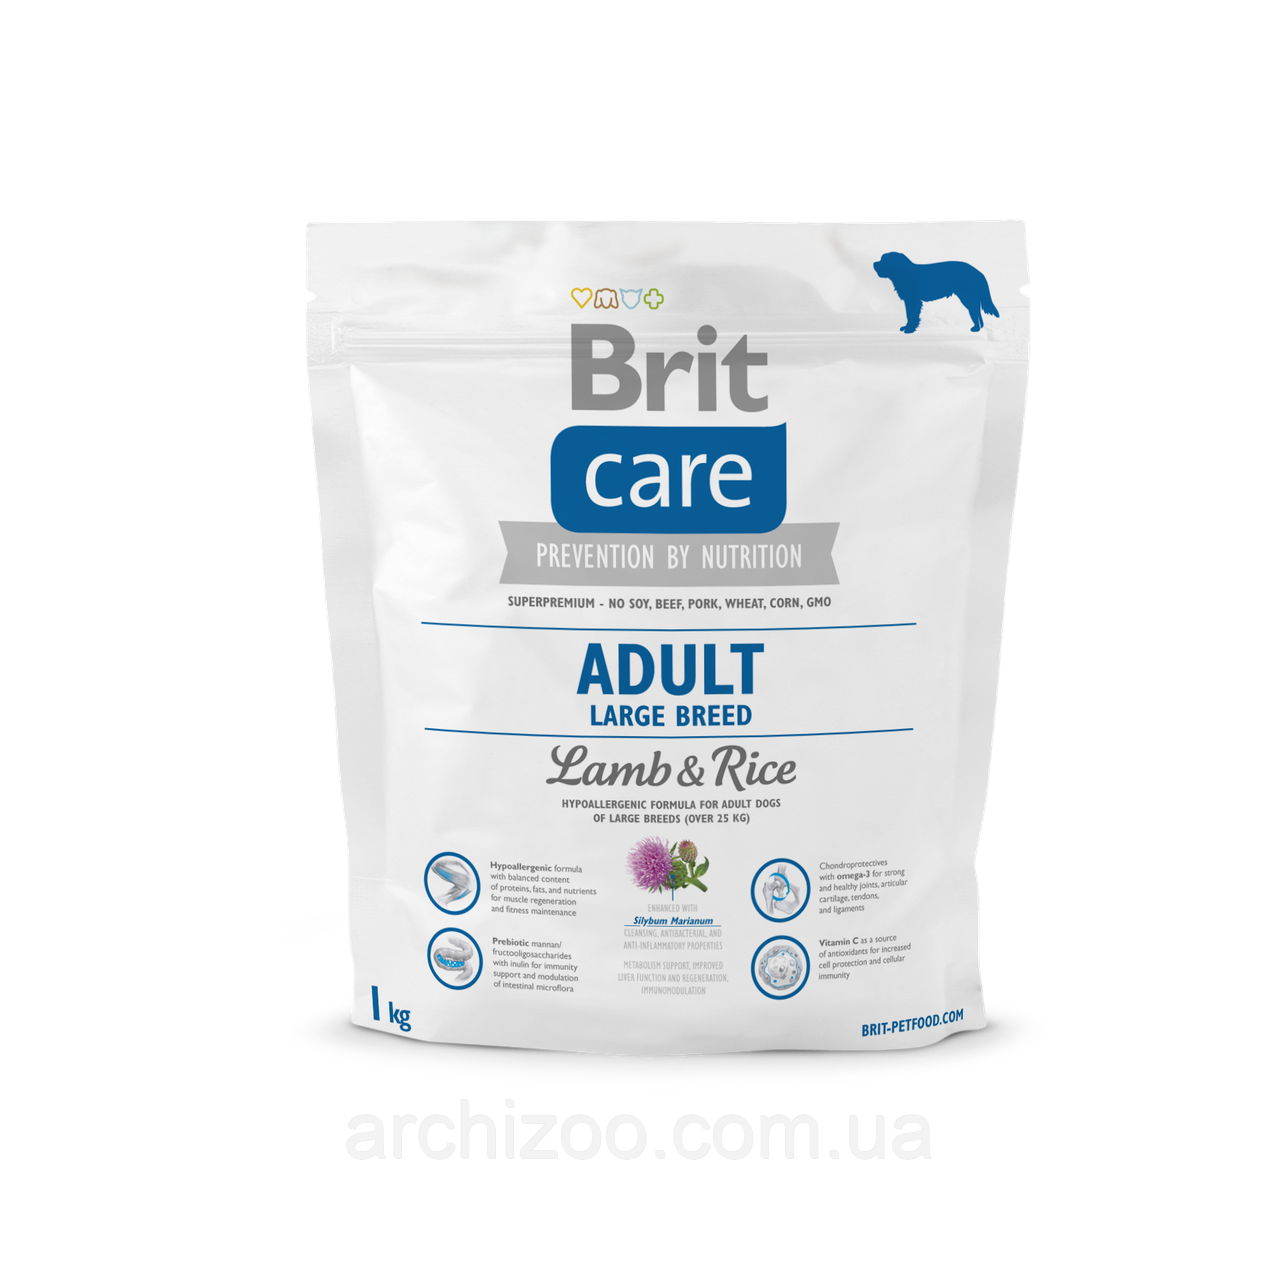 Brit Care Adult Large Breed Lamb & Rice корм для собак крупных пород, 1 кг